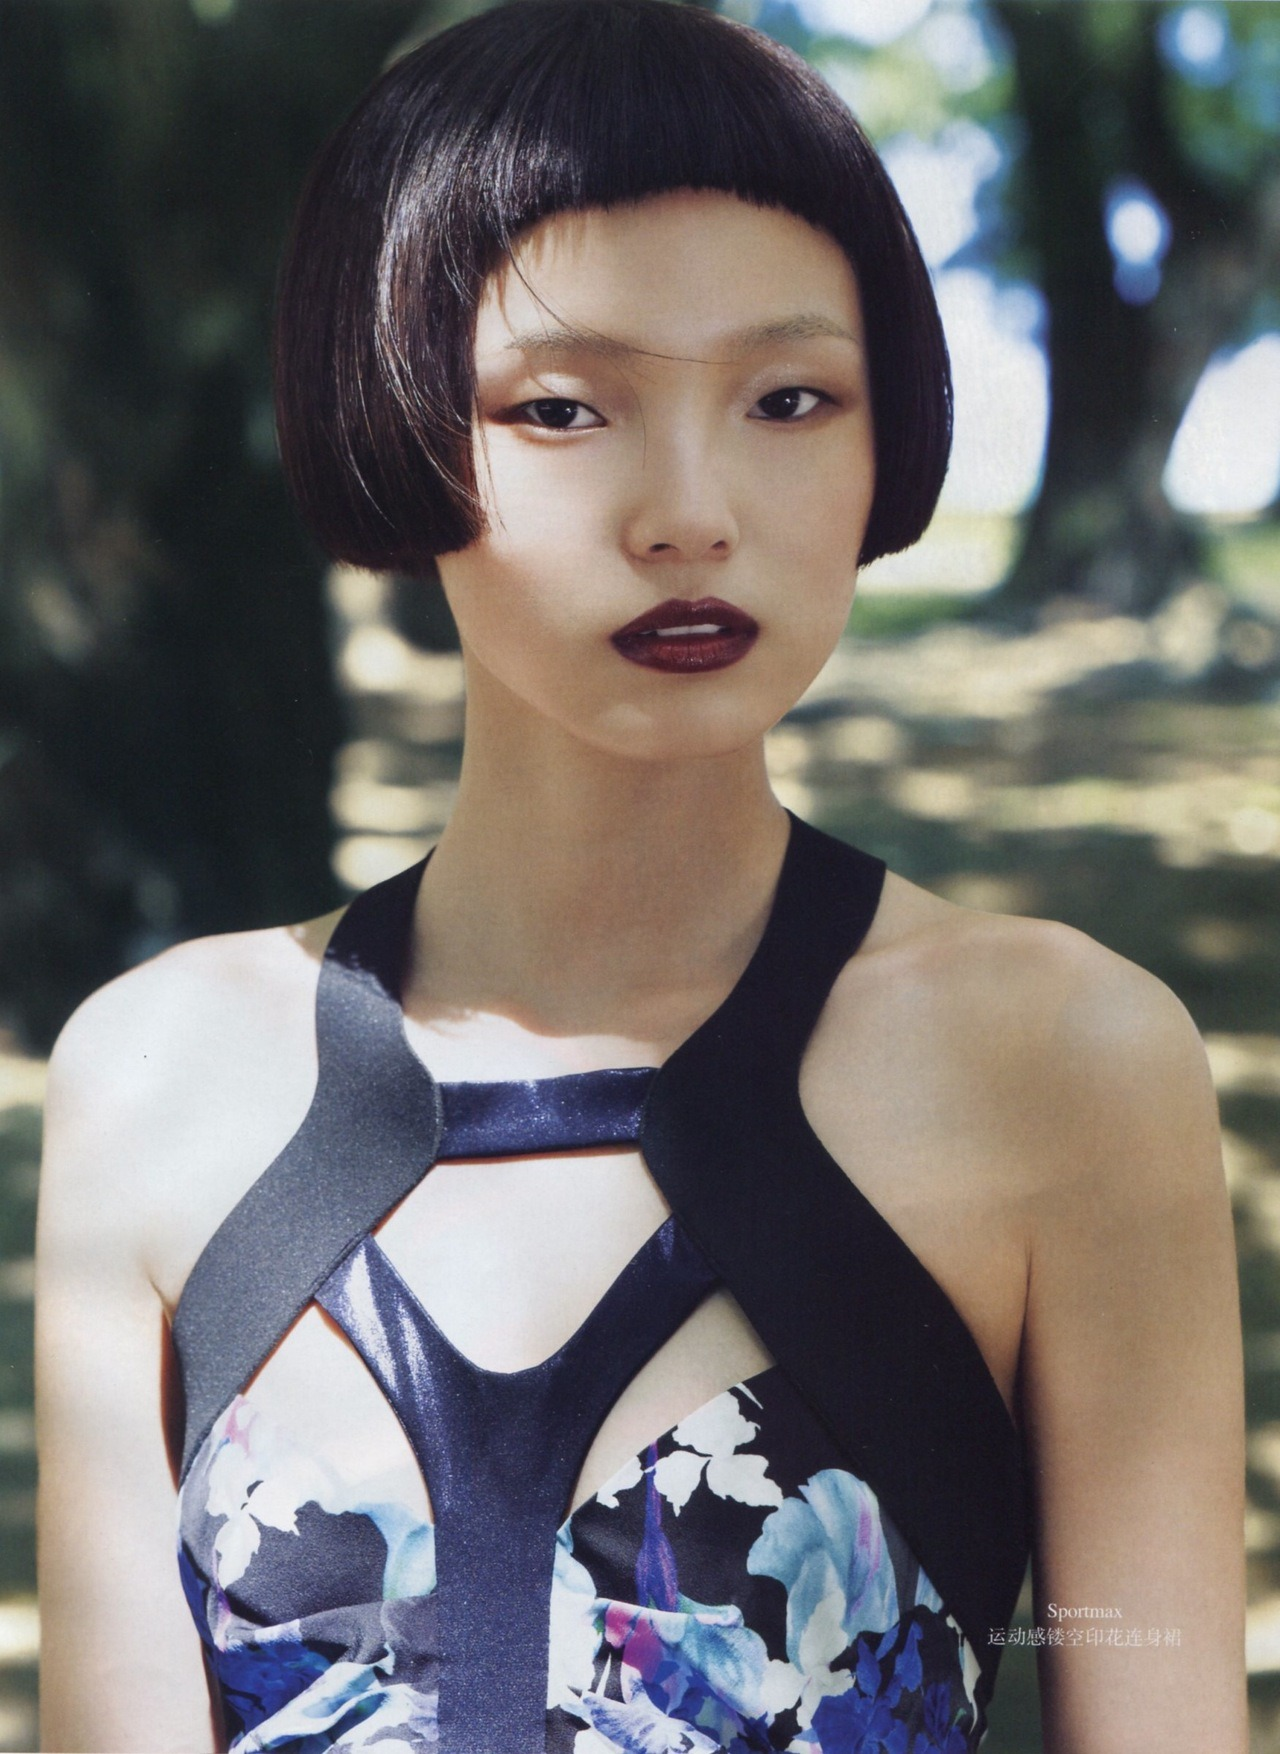 Xiao Wen Ju for OK! China #1, Dreamy Forest